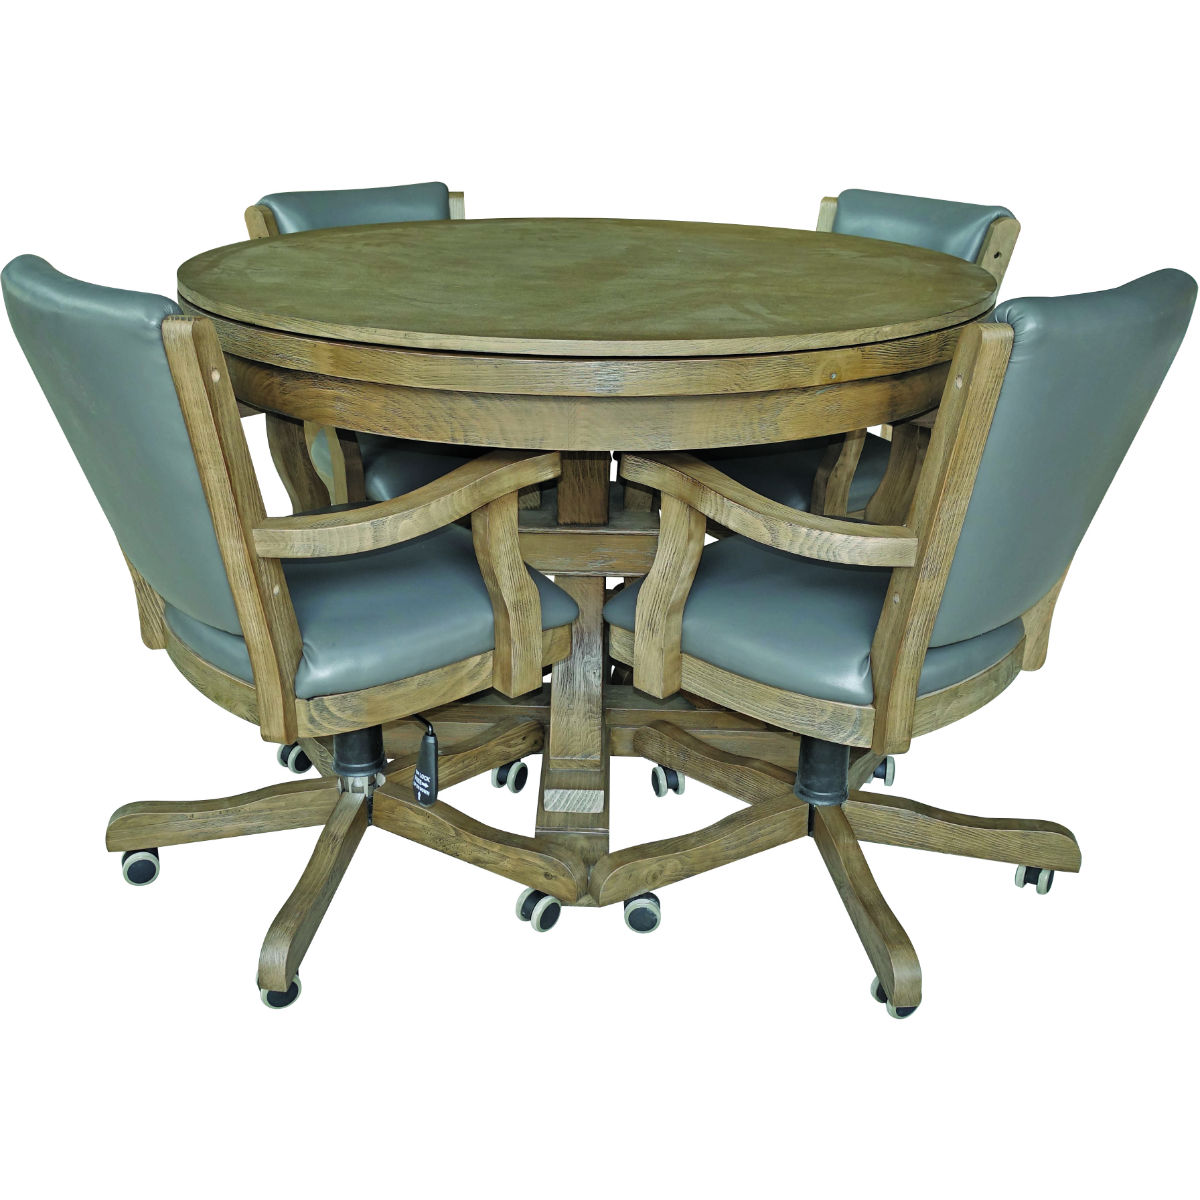 Beringer – Hand Scaped Poker Table with cover